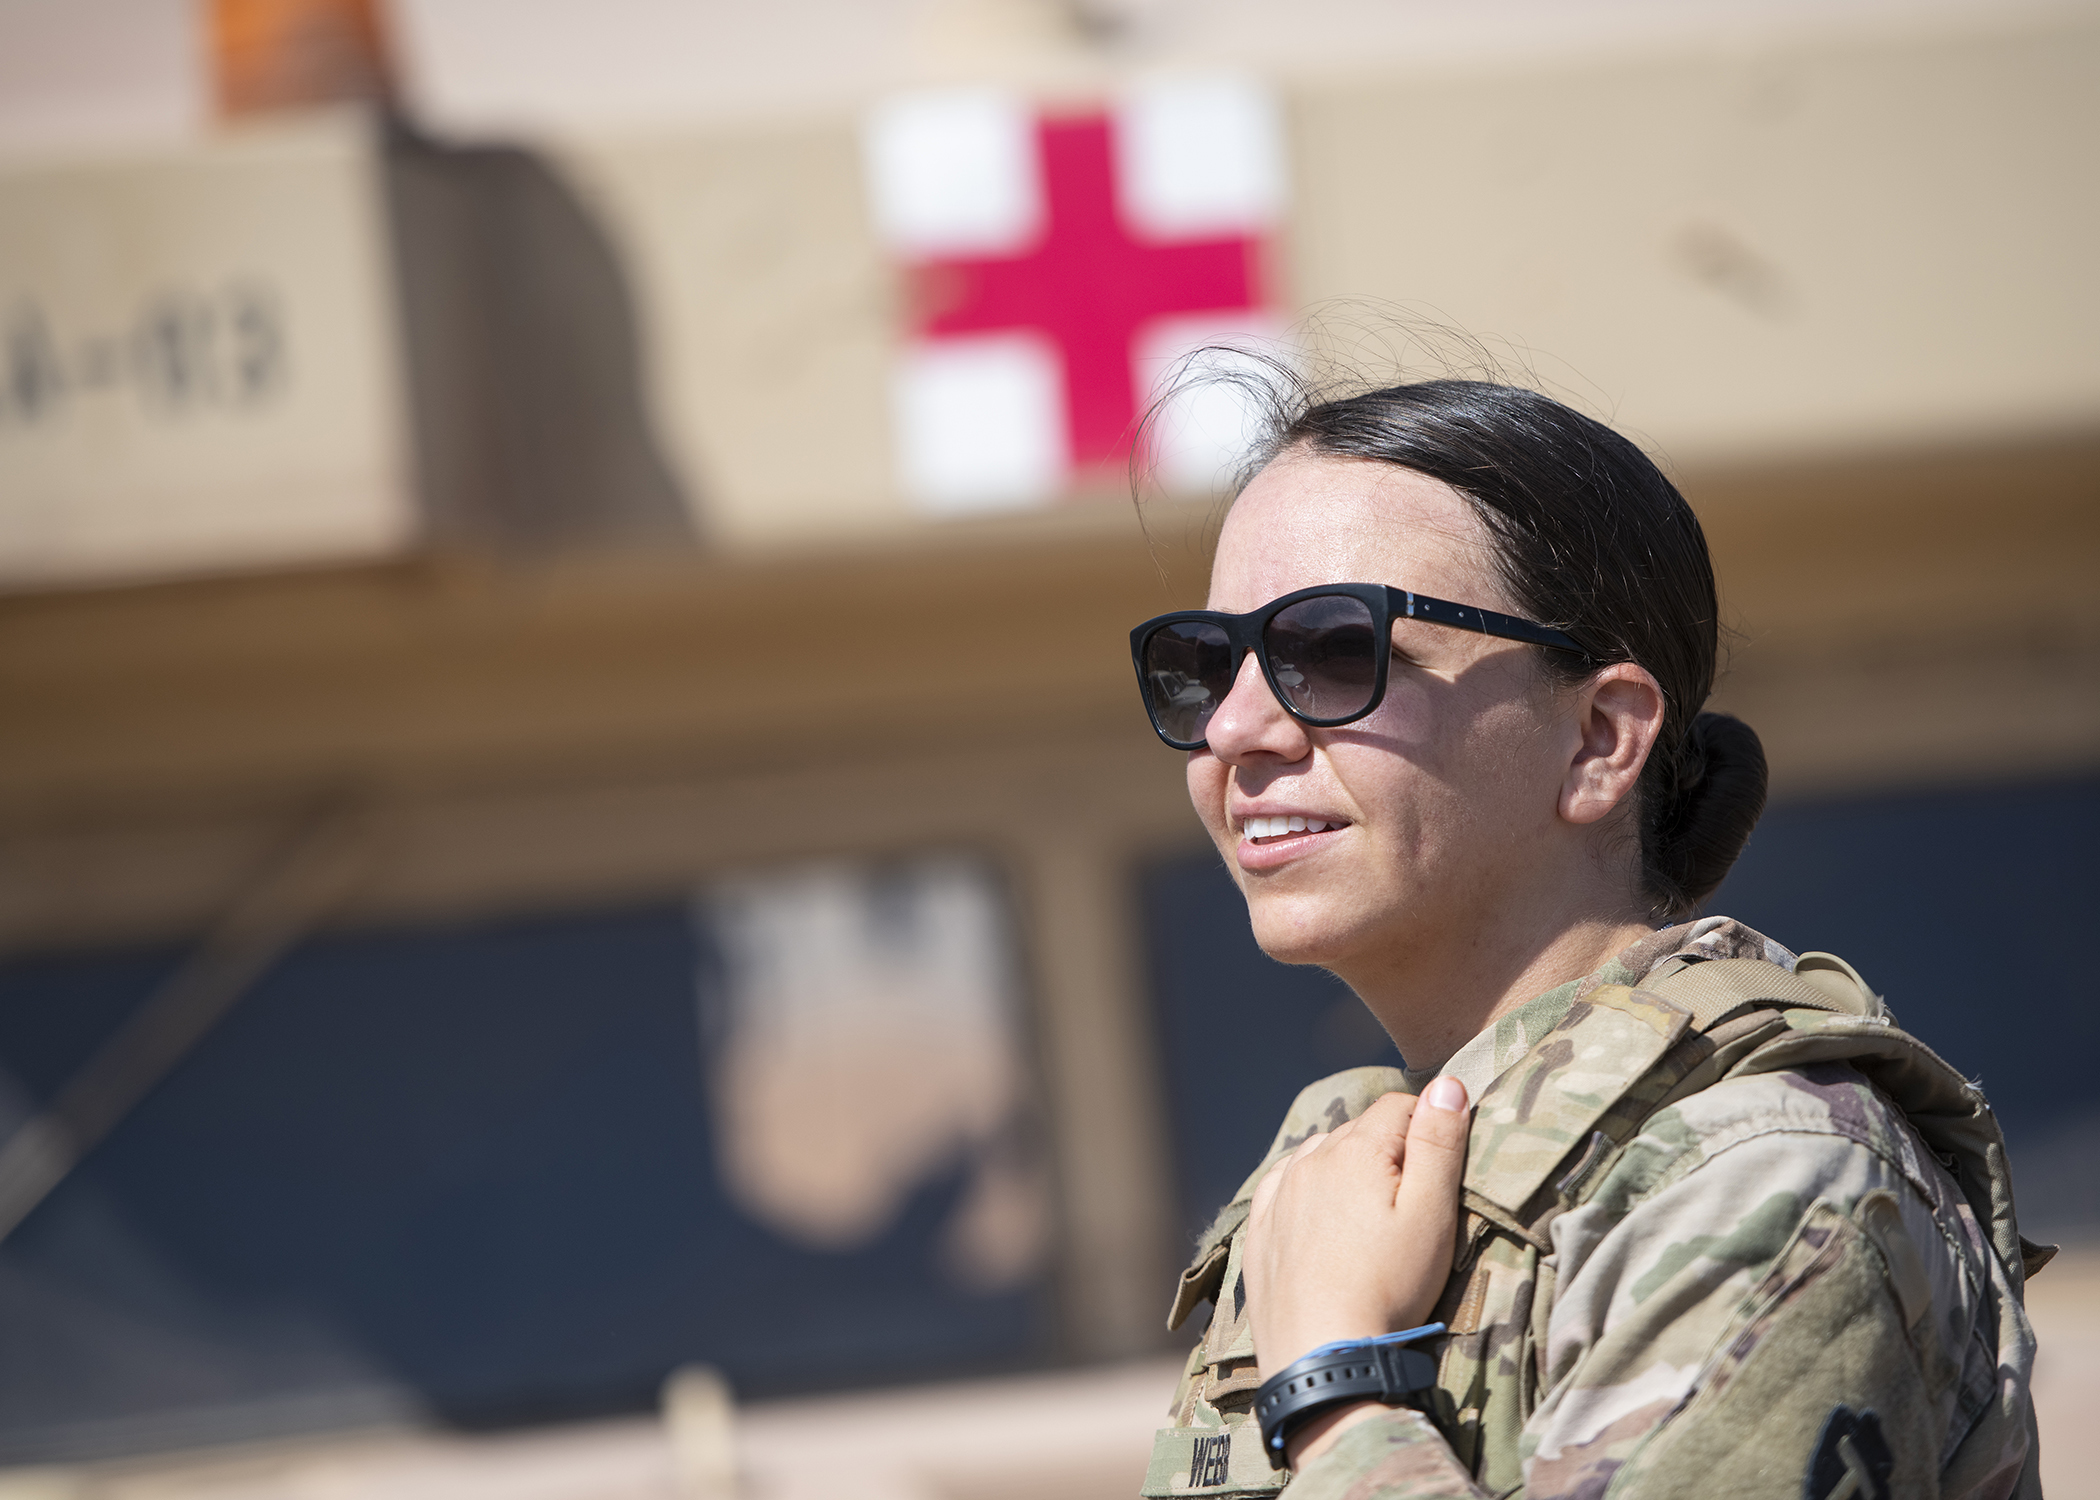 U.S. Army Spc. Natalia Webb, a medical technician from 1-141 Infantry Regiment, Task Force Alamo, Texas National Guard, assigned to CJTF-HOA, and the only female to earn the German Armed Forces Badge for military proficiency (GAFB) this rotation, poses for a photo during the marksmanship portion of the GAFB at the Arta Range Complex, Djibouti, Jan. 17, 2019. Competing for the badge offered a unique opportunity to Soldiers and worked as an information exchange between the U.S. and Germany militaries. (U.S. Air Force photo by Tech. Sgt. Shawn Nickel)